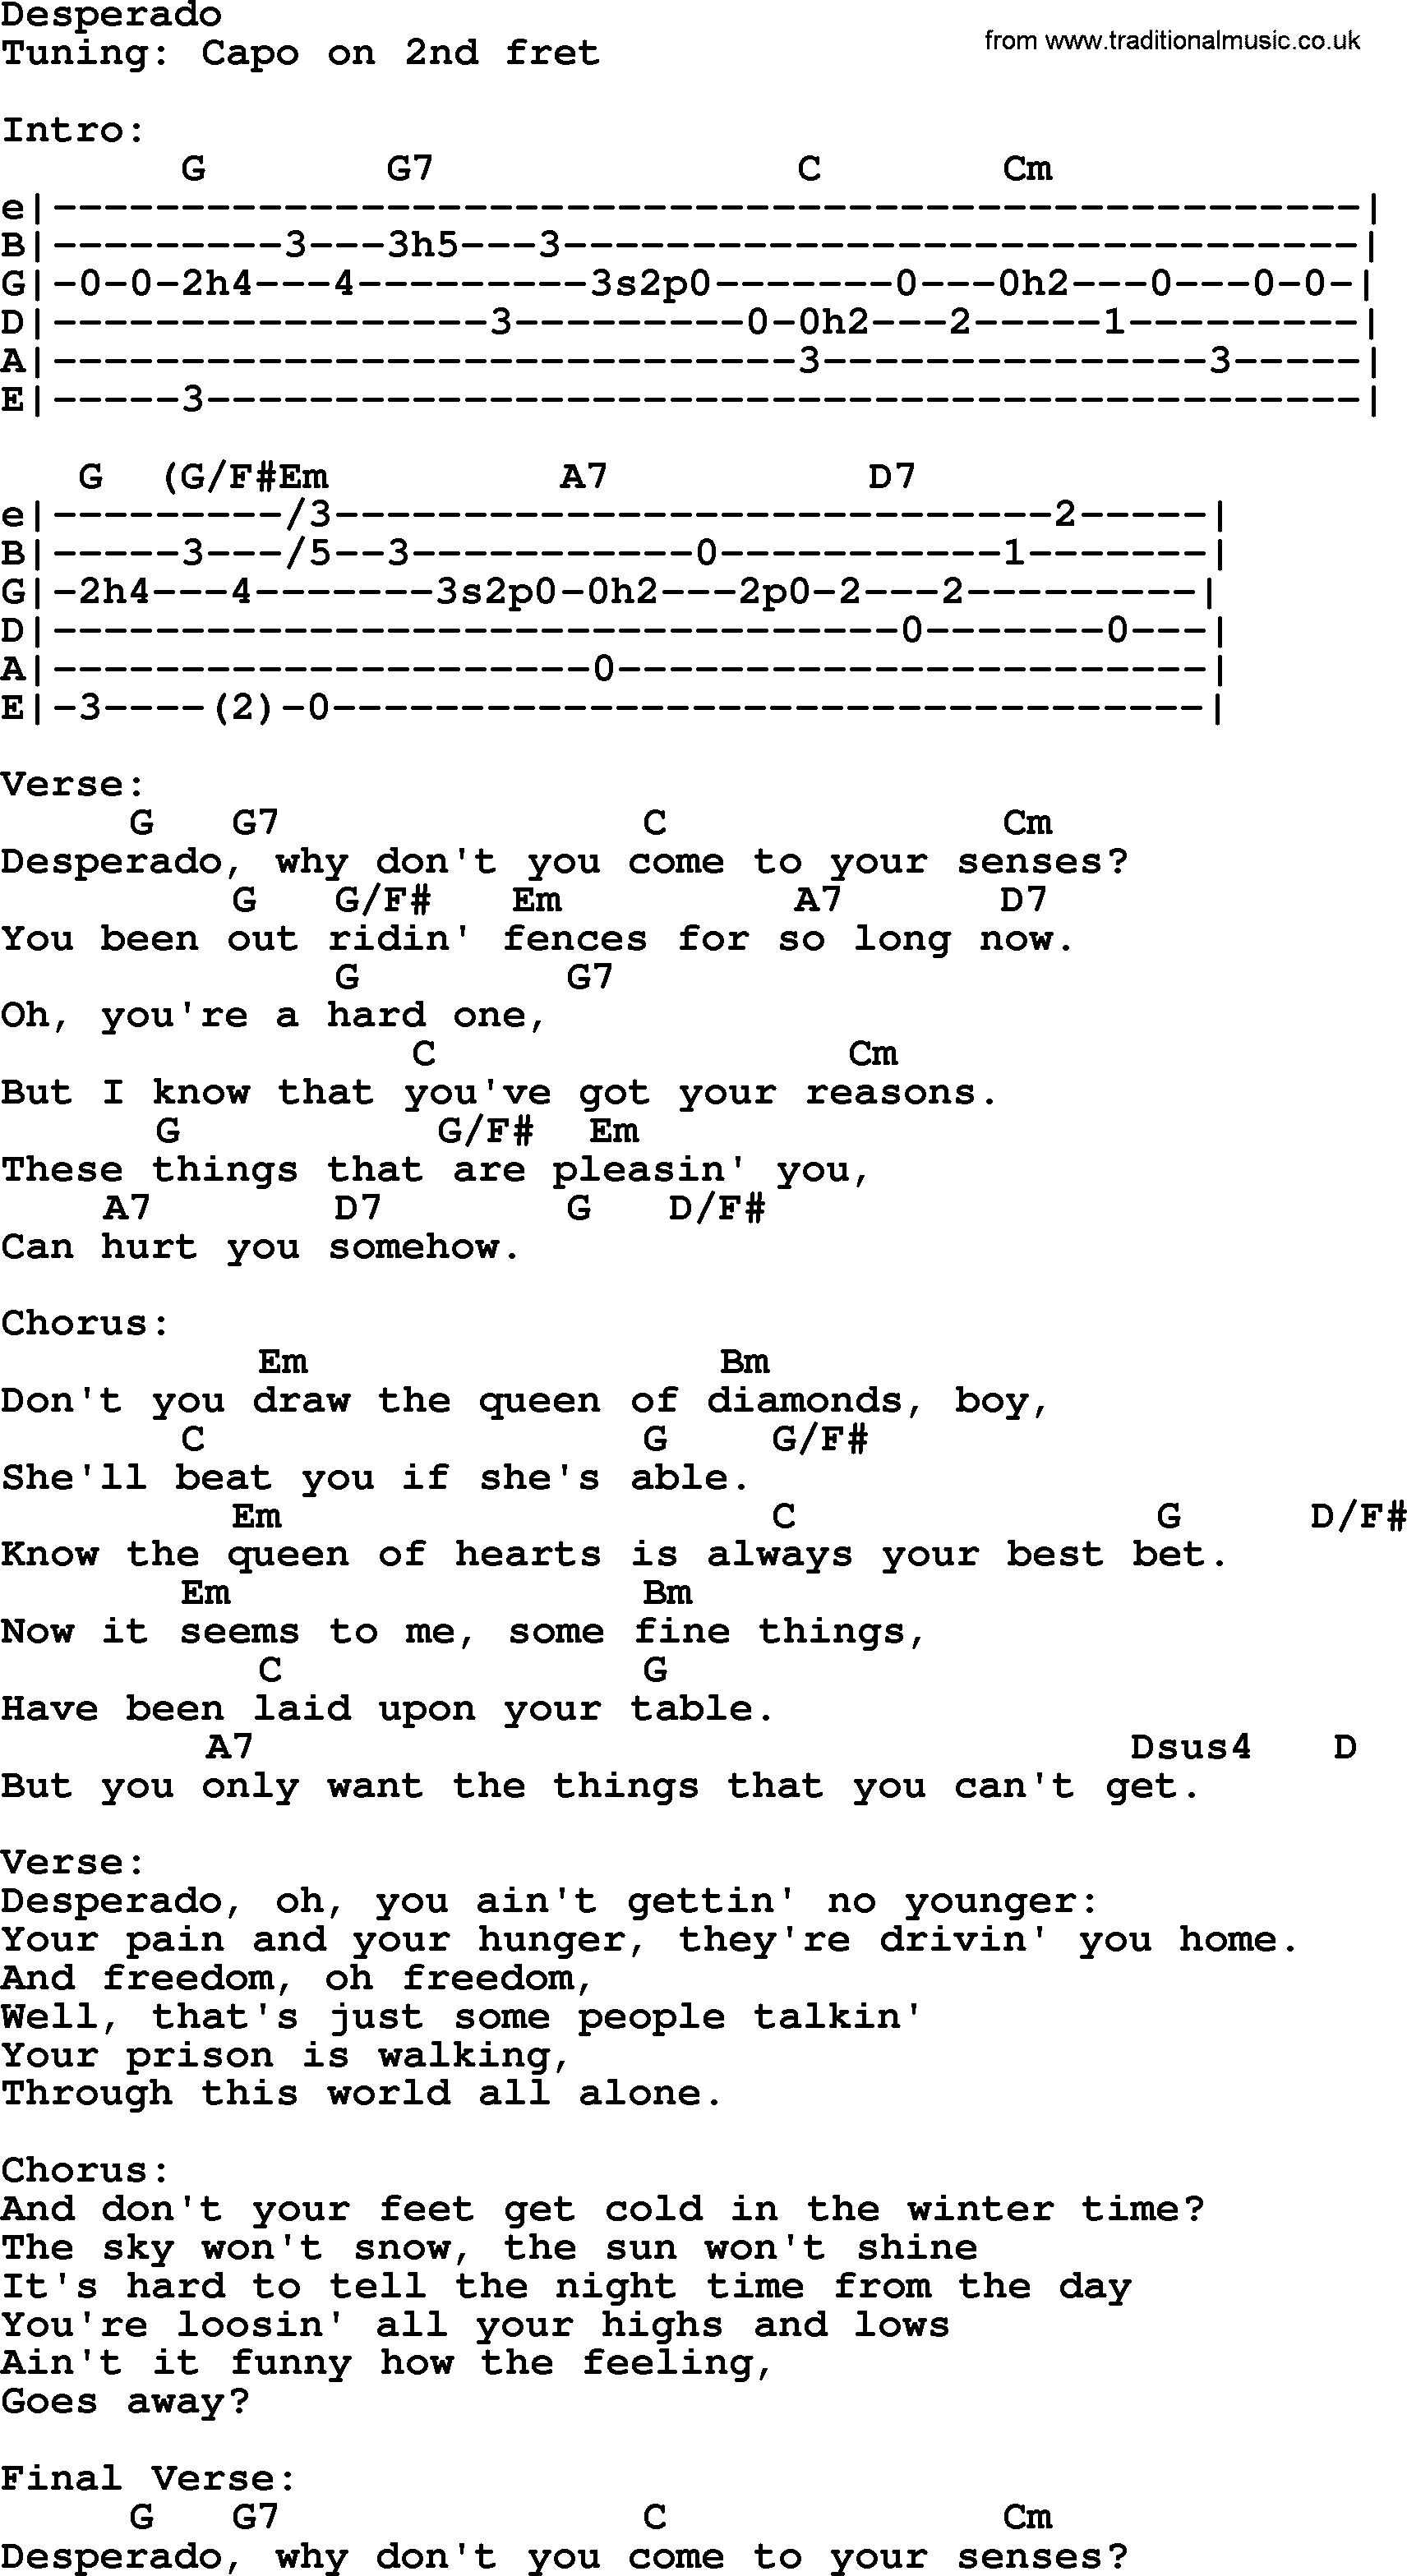 Johnny Cash song: Desperado, lyrics and chords